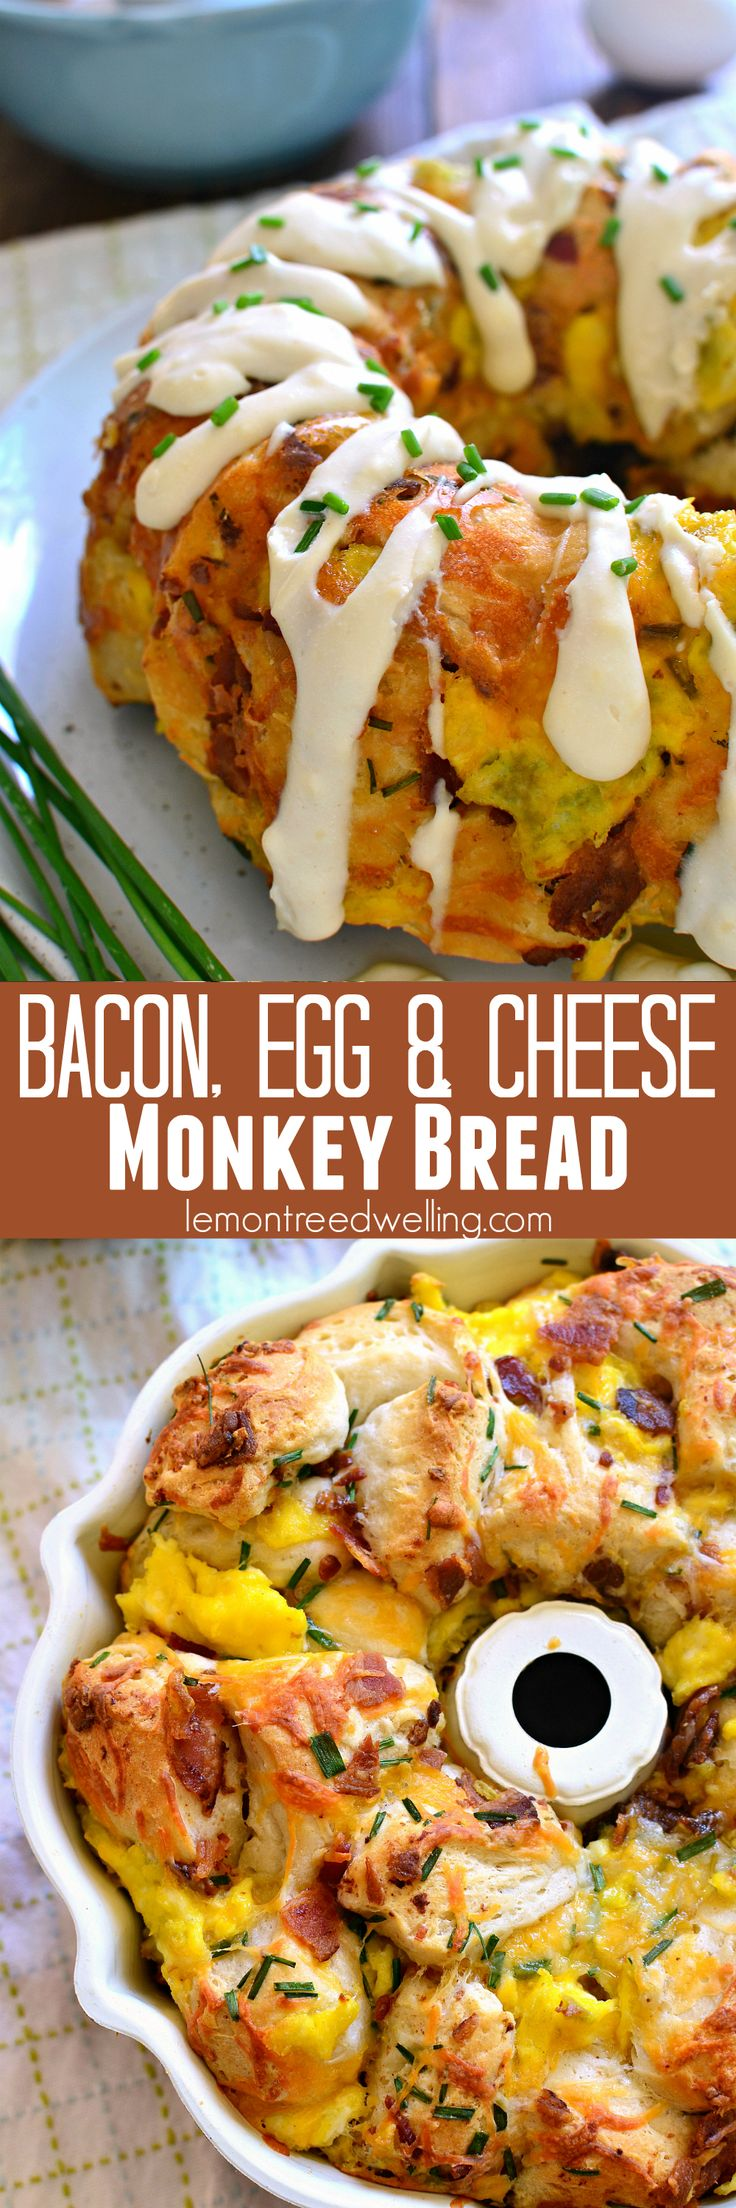 This Bacon, Egg & Cheese Monkey Bread combines all your breakfast favorites…